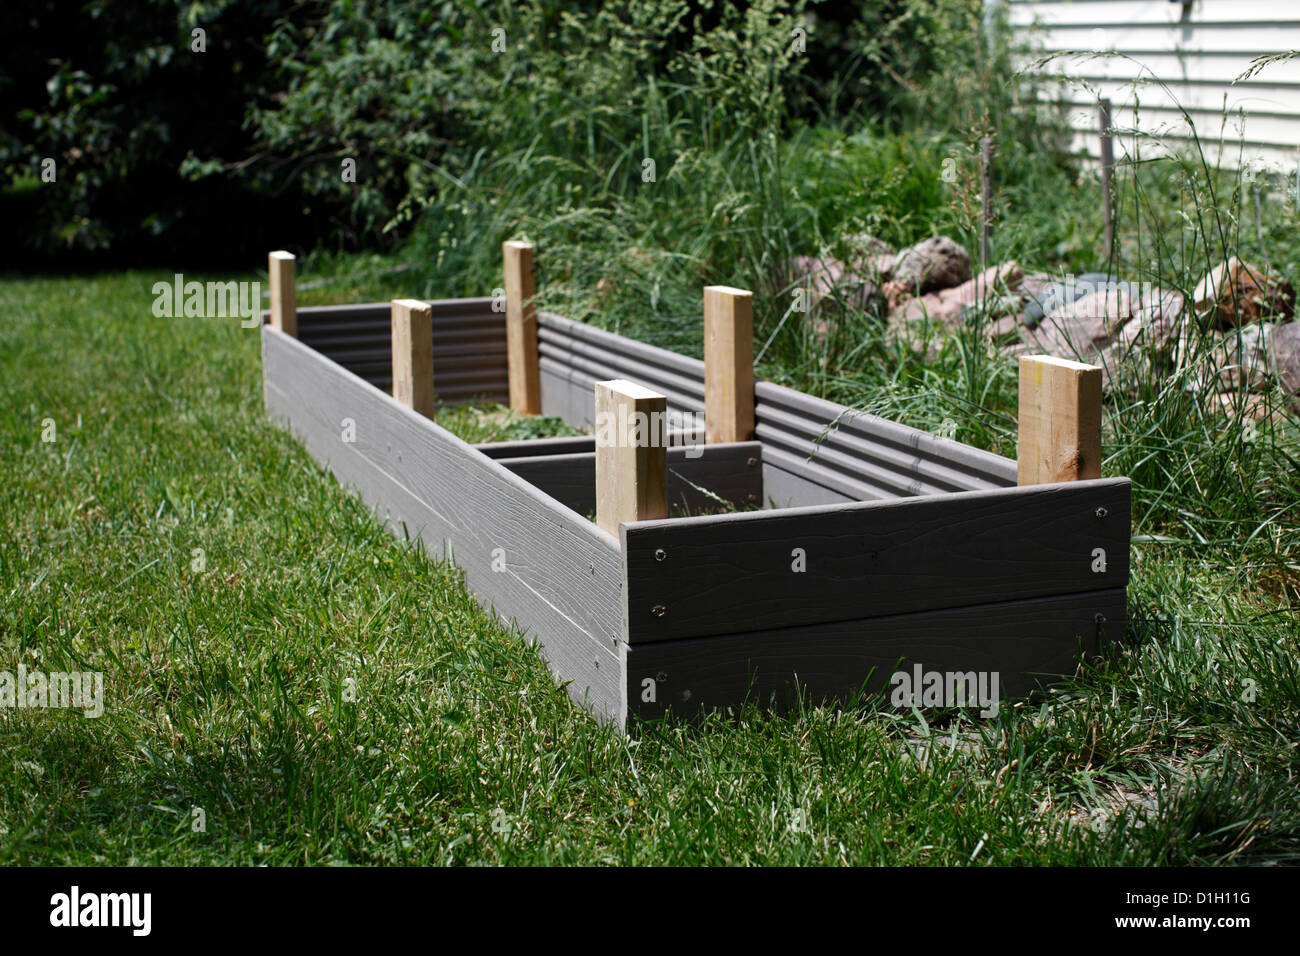 Underside of a do it yourself raised bed showing anchor posts stock underside of a do it yourself raised bed showing anchor posts solutioingenieria Gallery